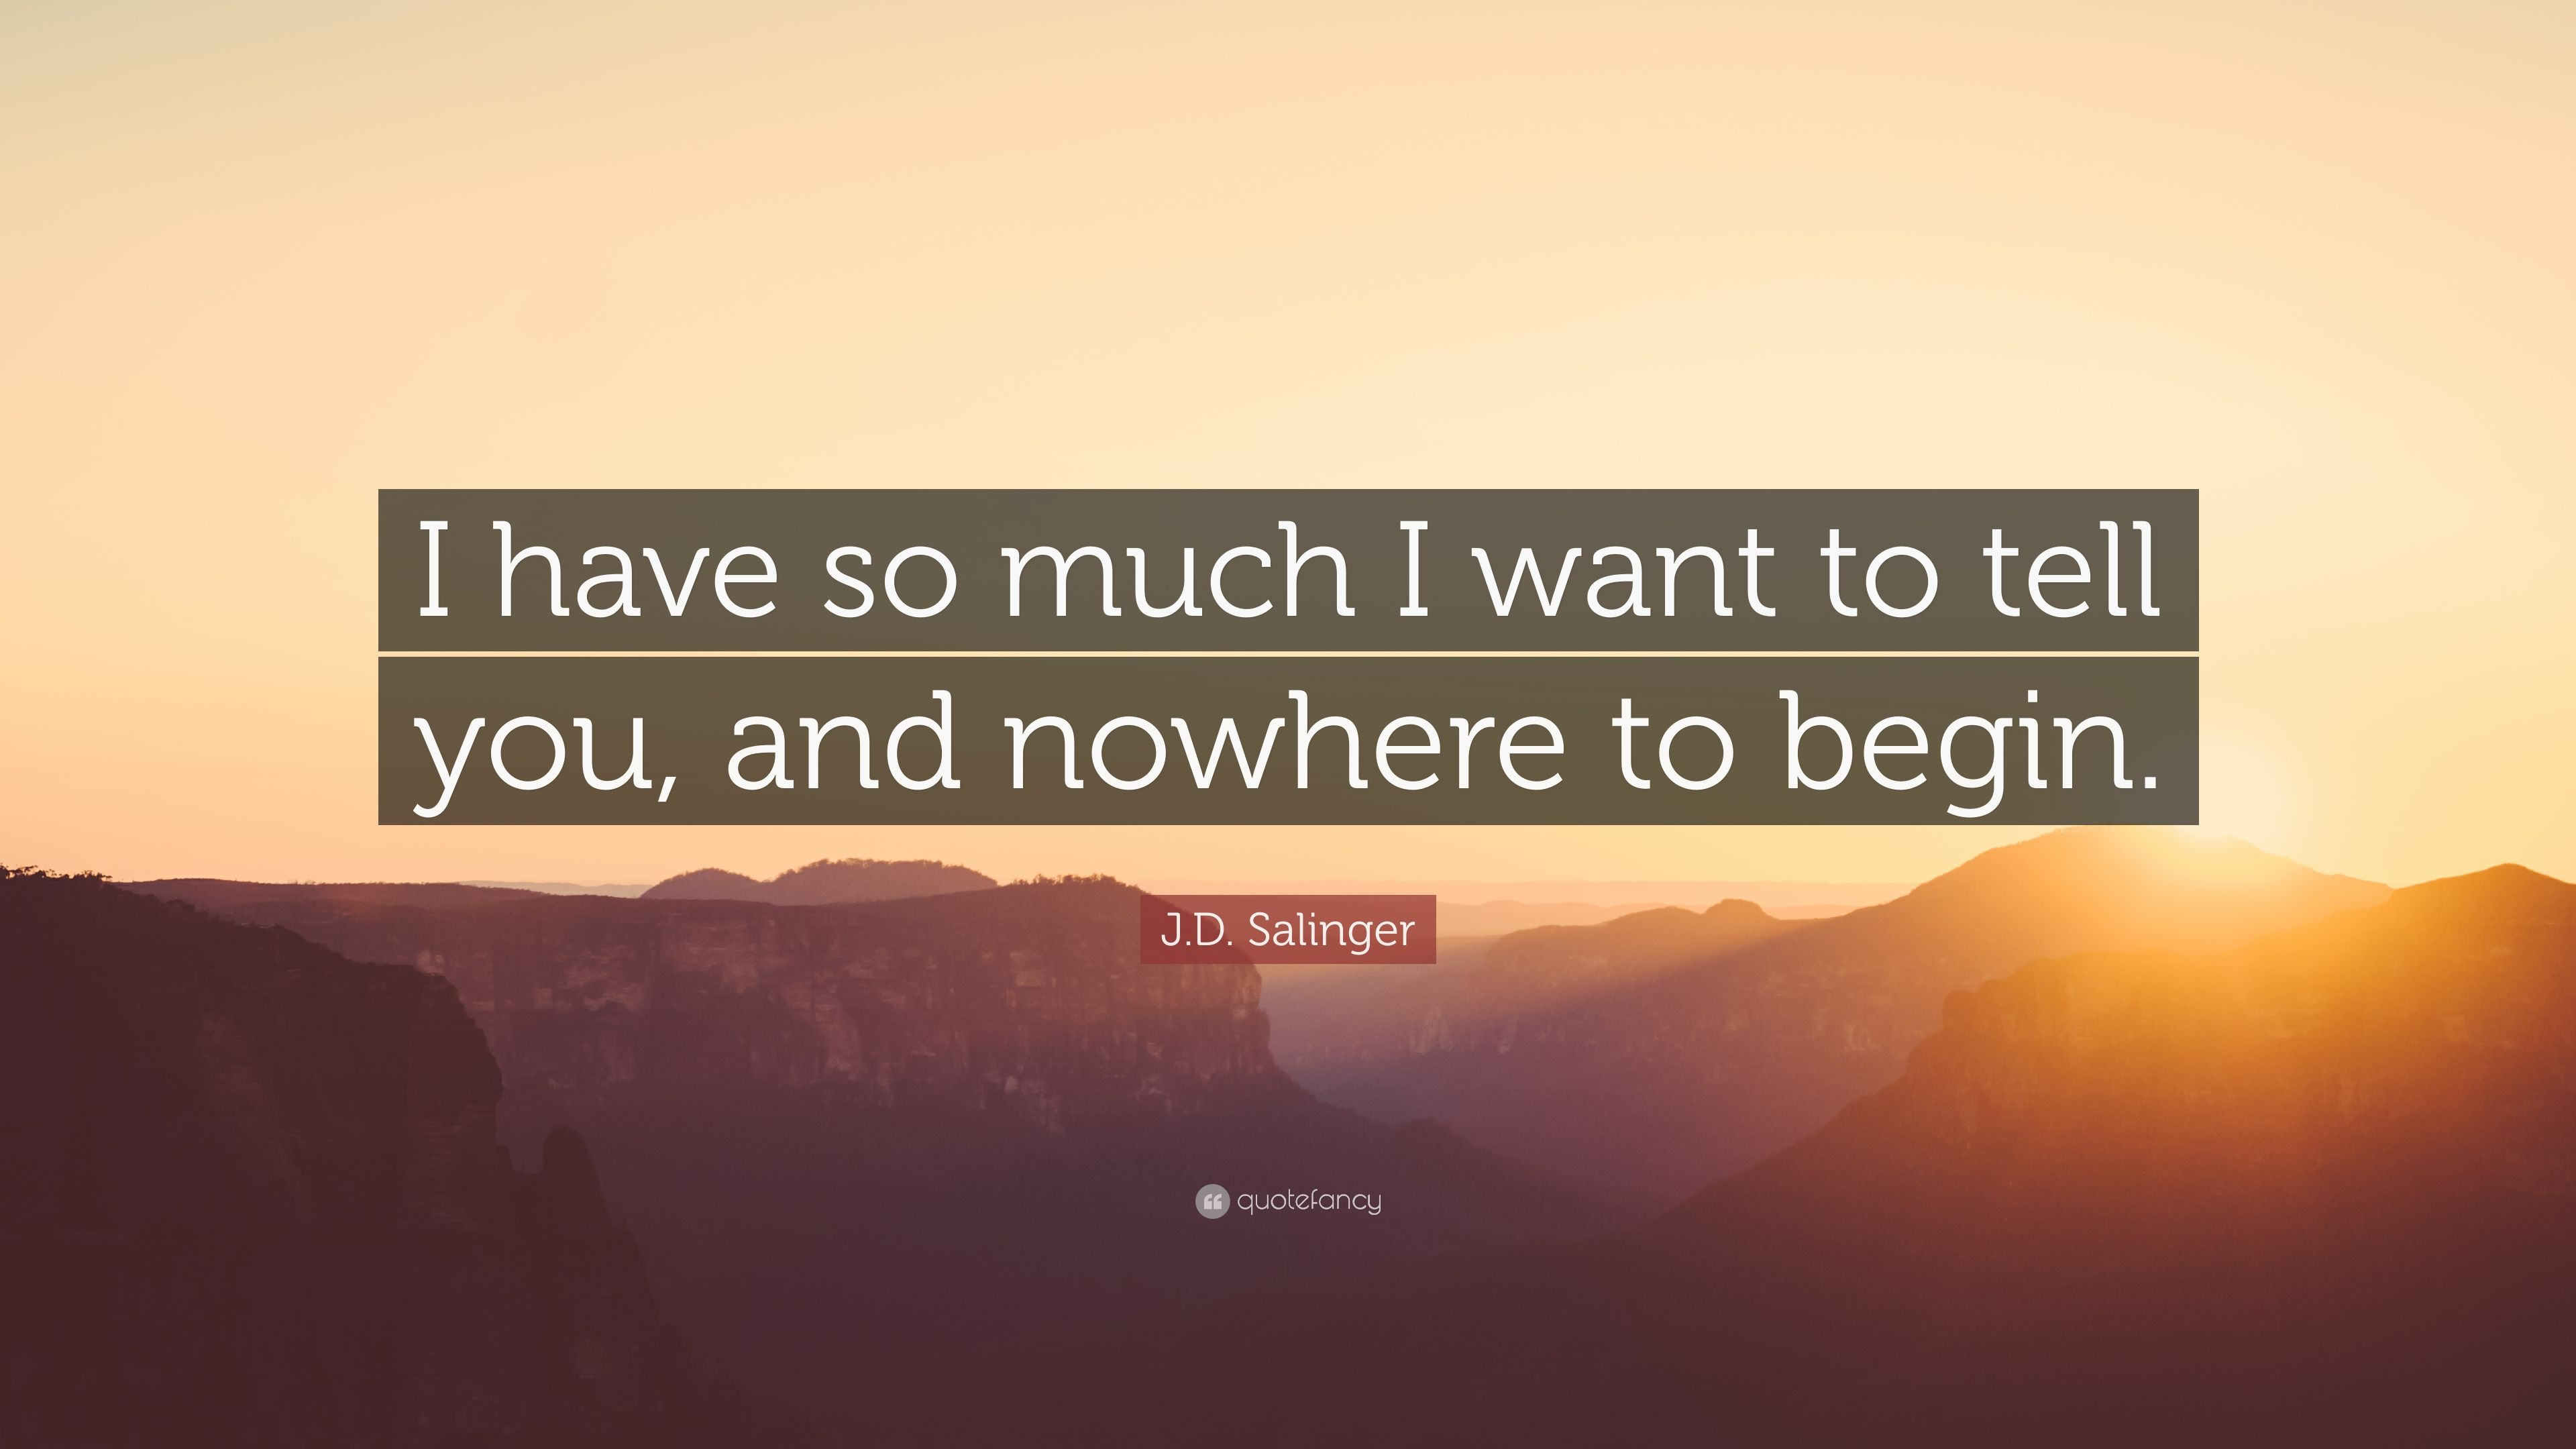 J.D. Salinger Quote: I have so much I want to tell you